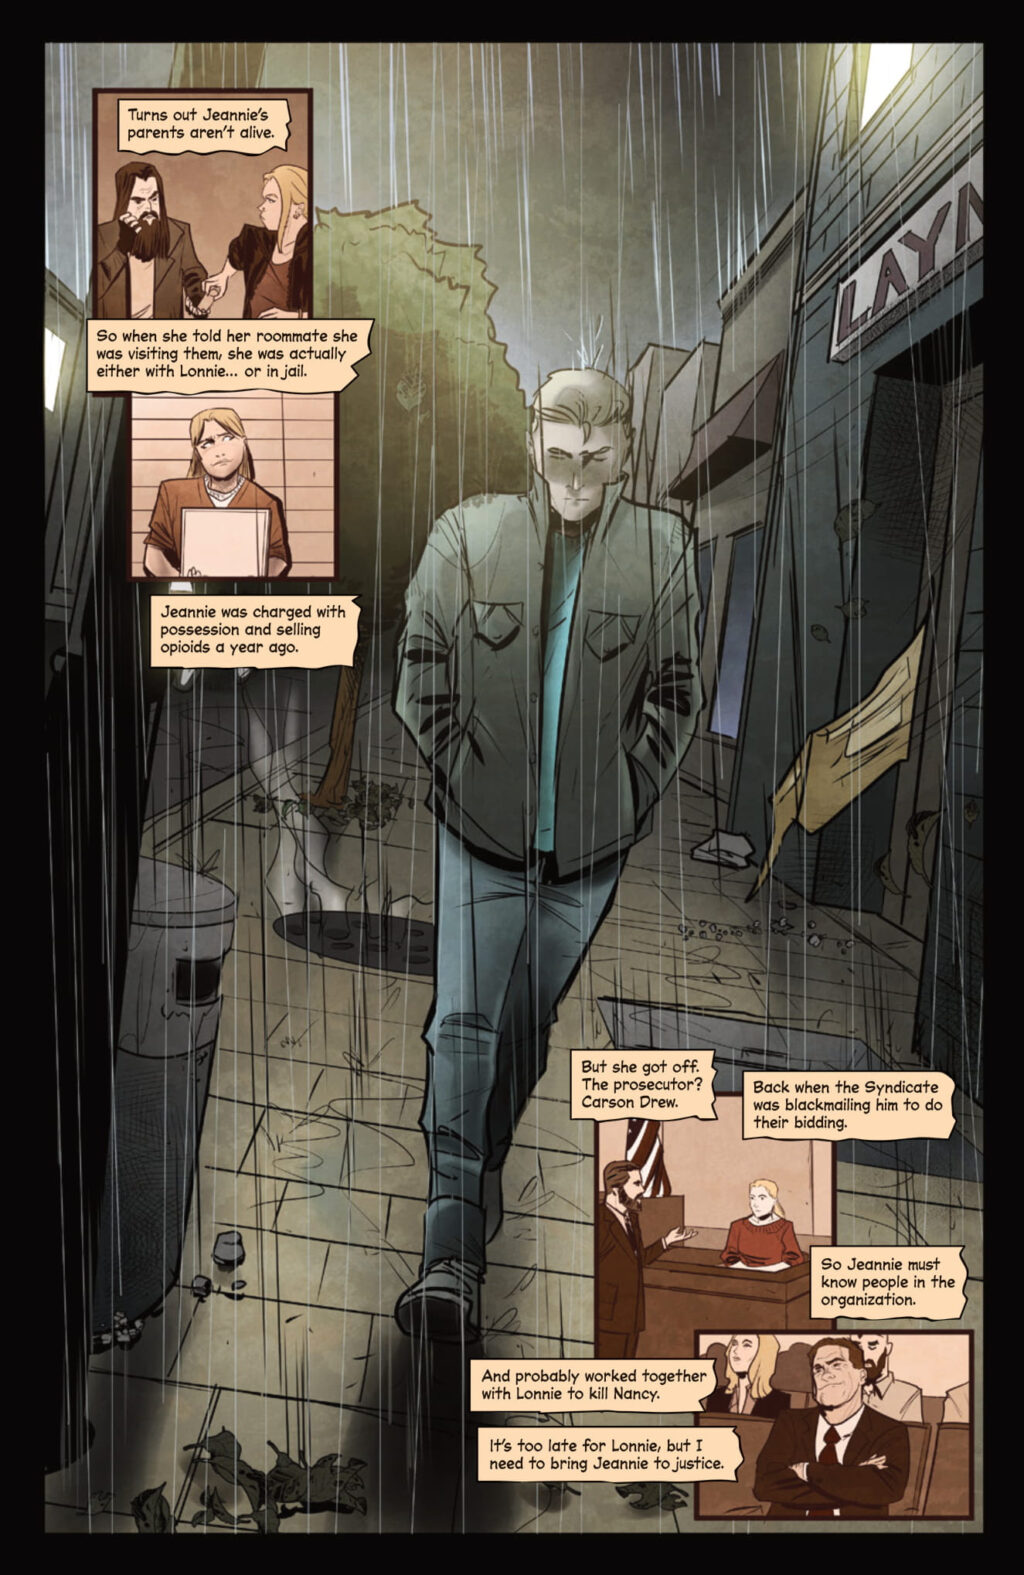 unnamed 10 1 1024x1575 - WHO KILLED NANCY DREW? Noir Comic Features Death of Iconic Teen Detective